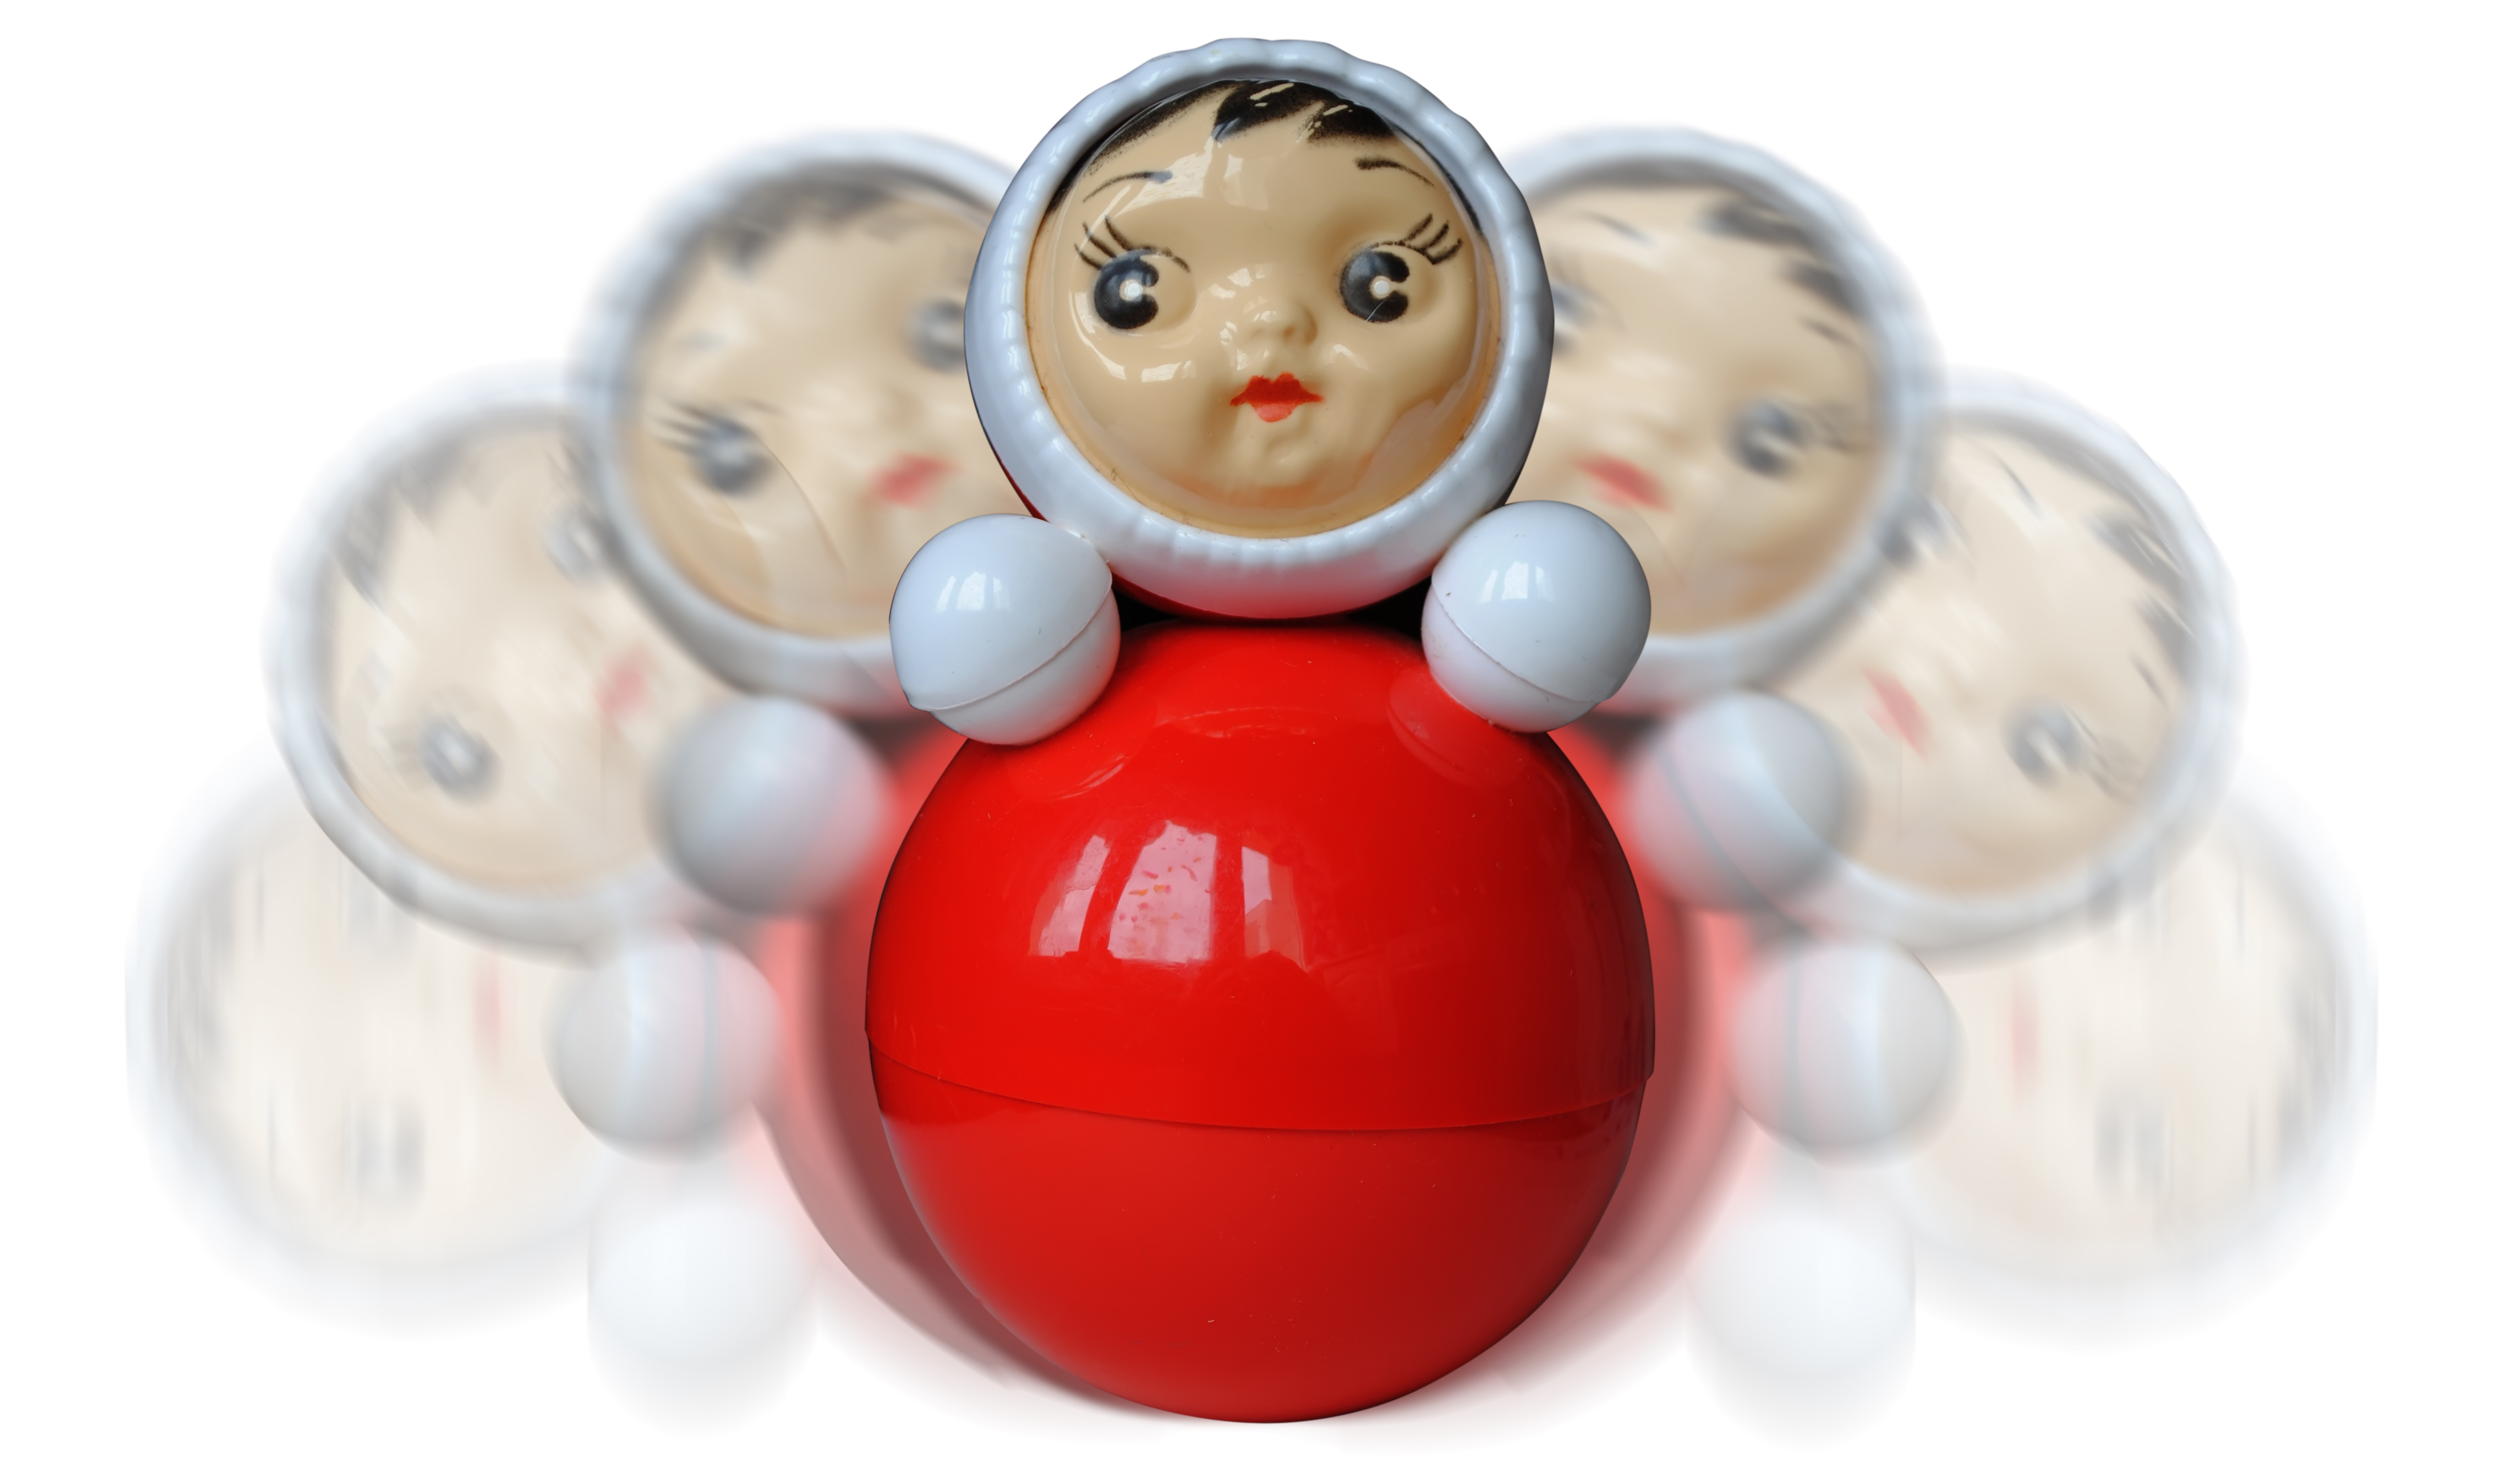 Toys 20r 20us : Weeble wobble toys r us wow